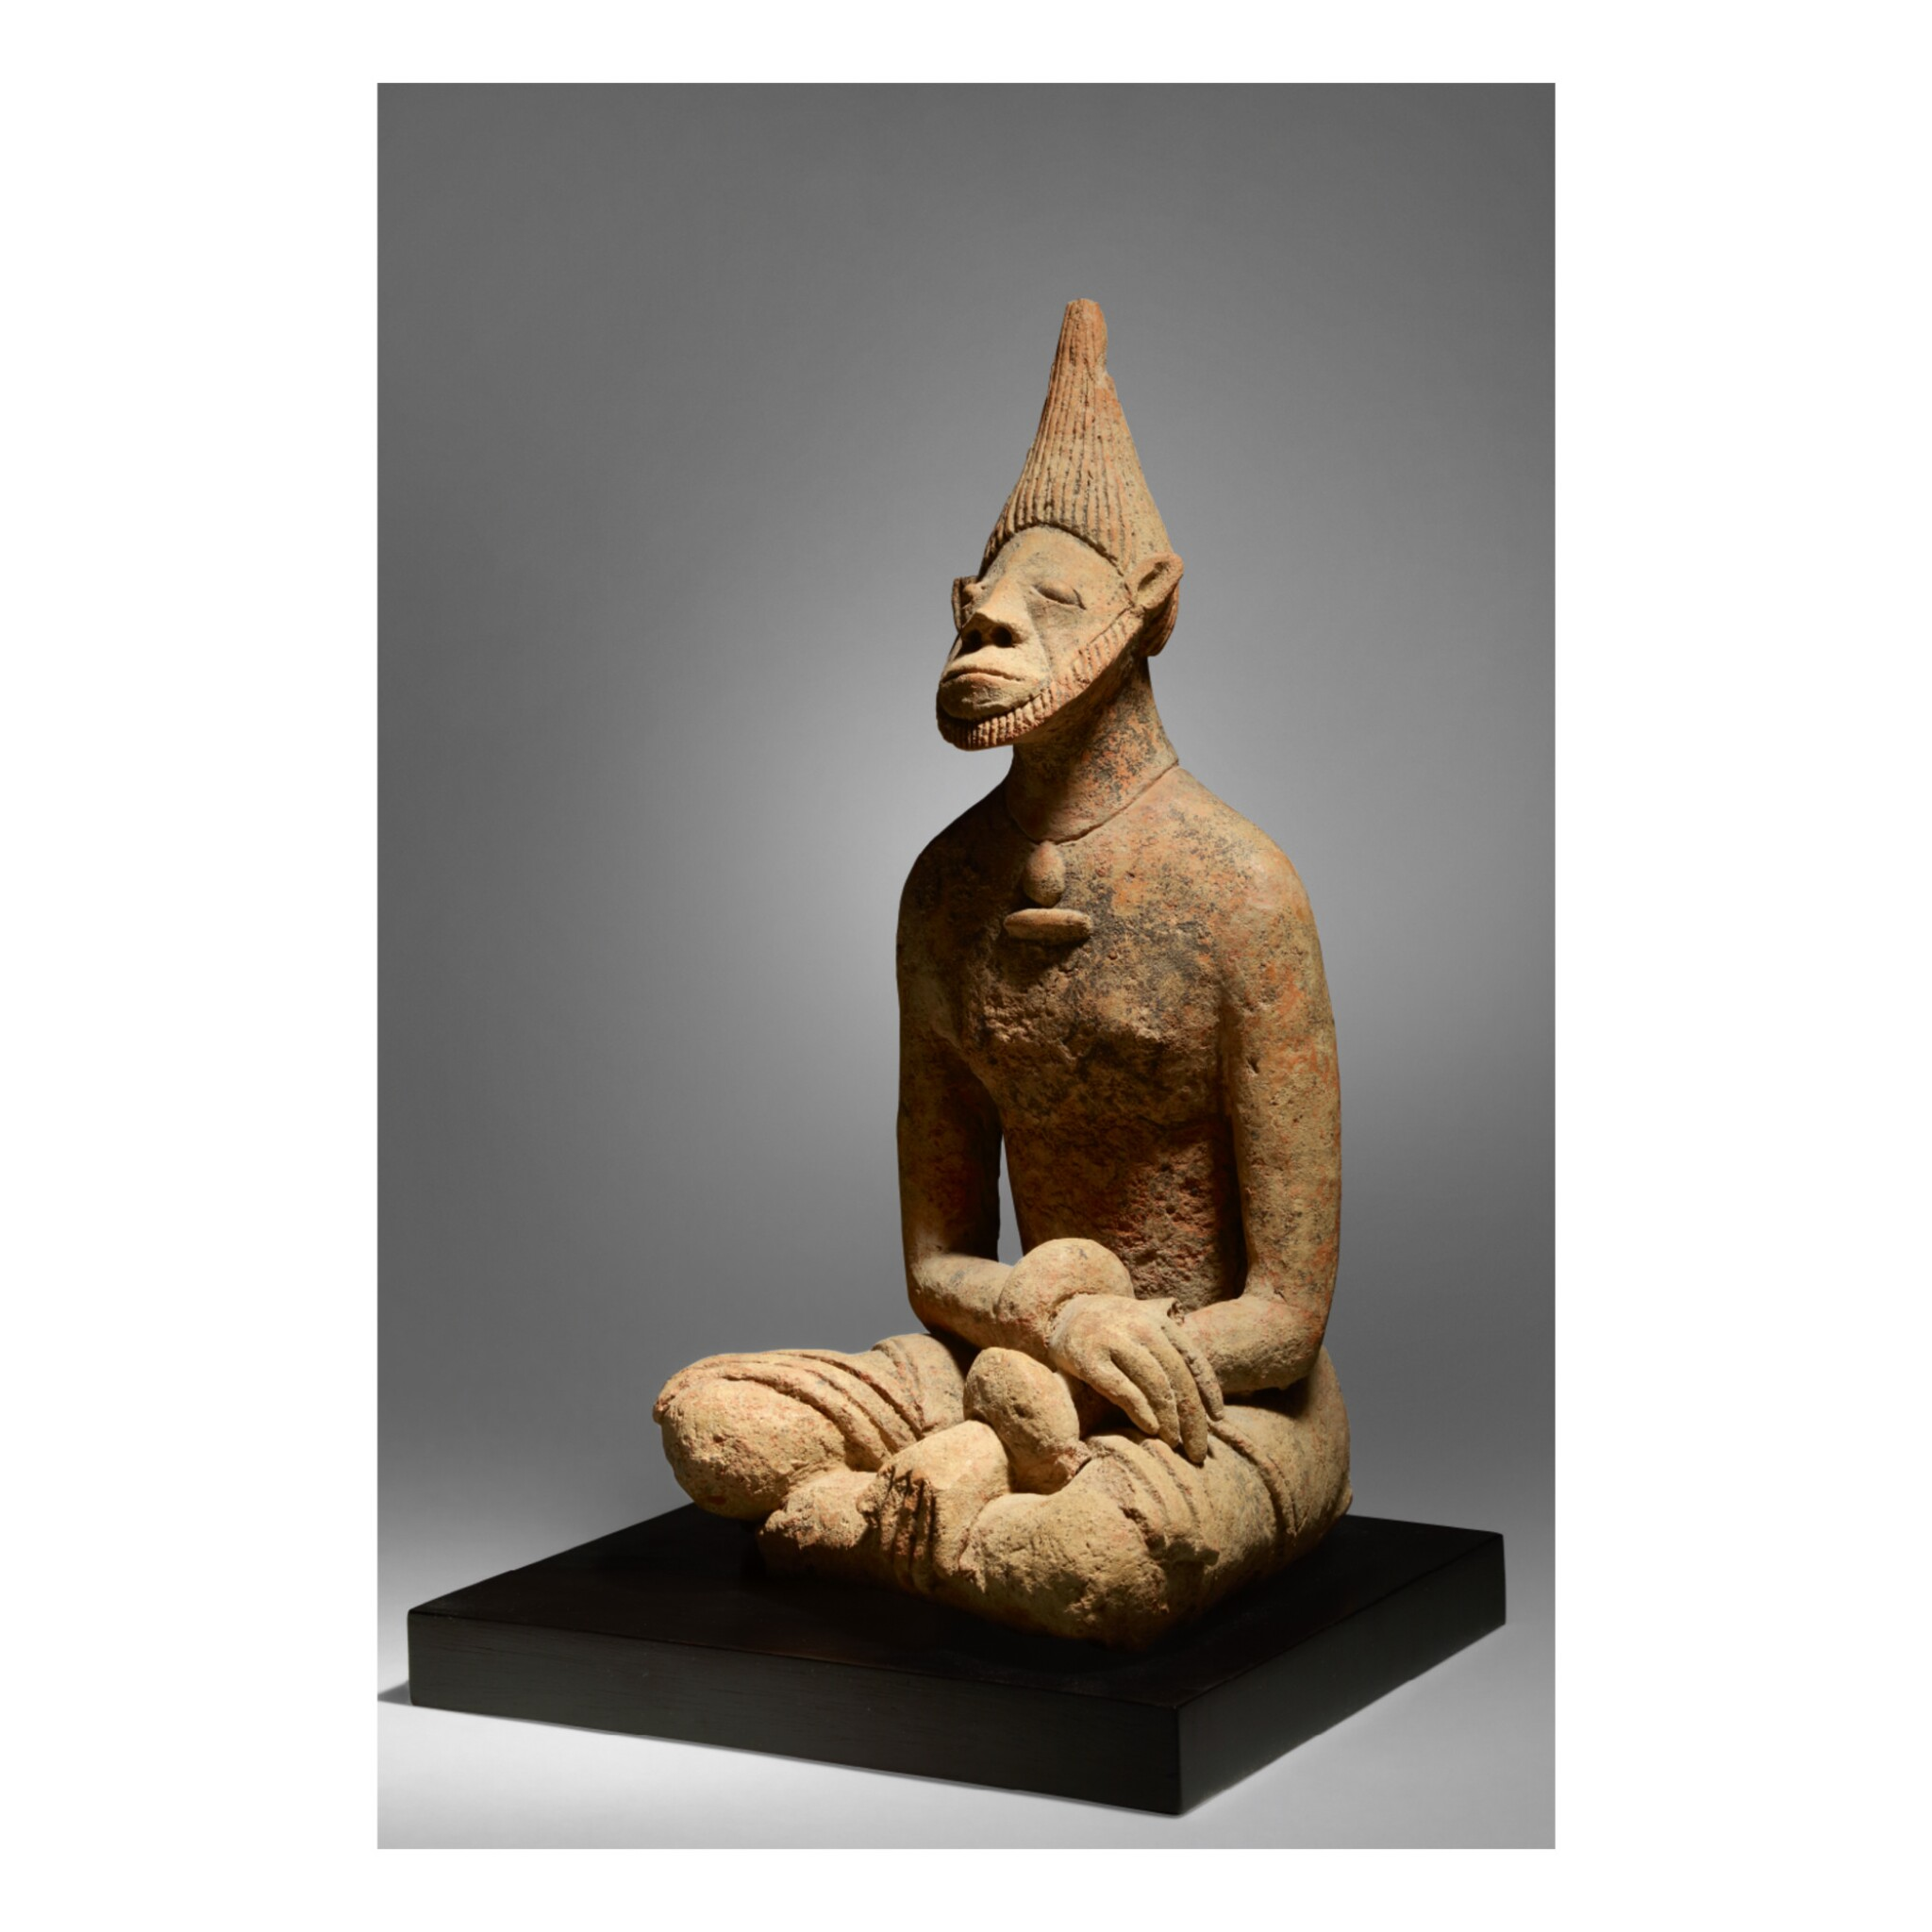 View full screen - View 1 of Lot 10. MIDDLE NIGER CIVILZATION SEATED MALE FIGURE, MALI, 12TH - 14TH CENTURY.